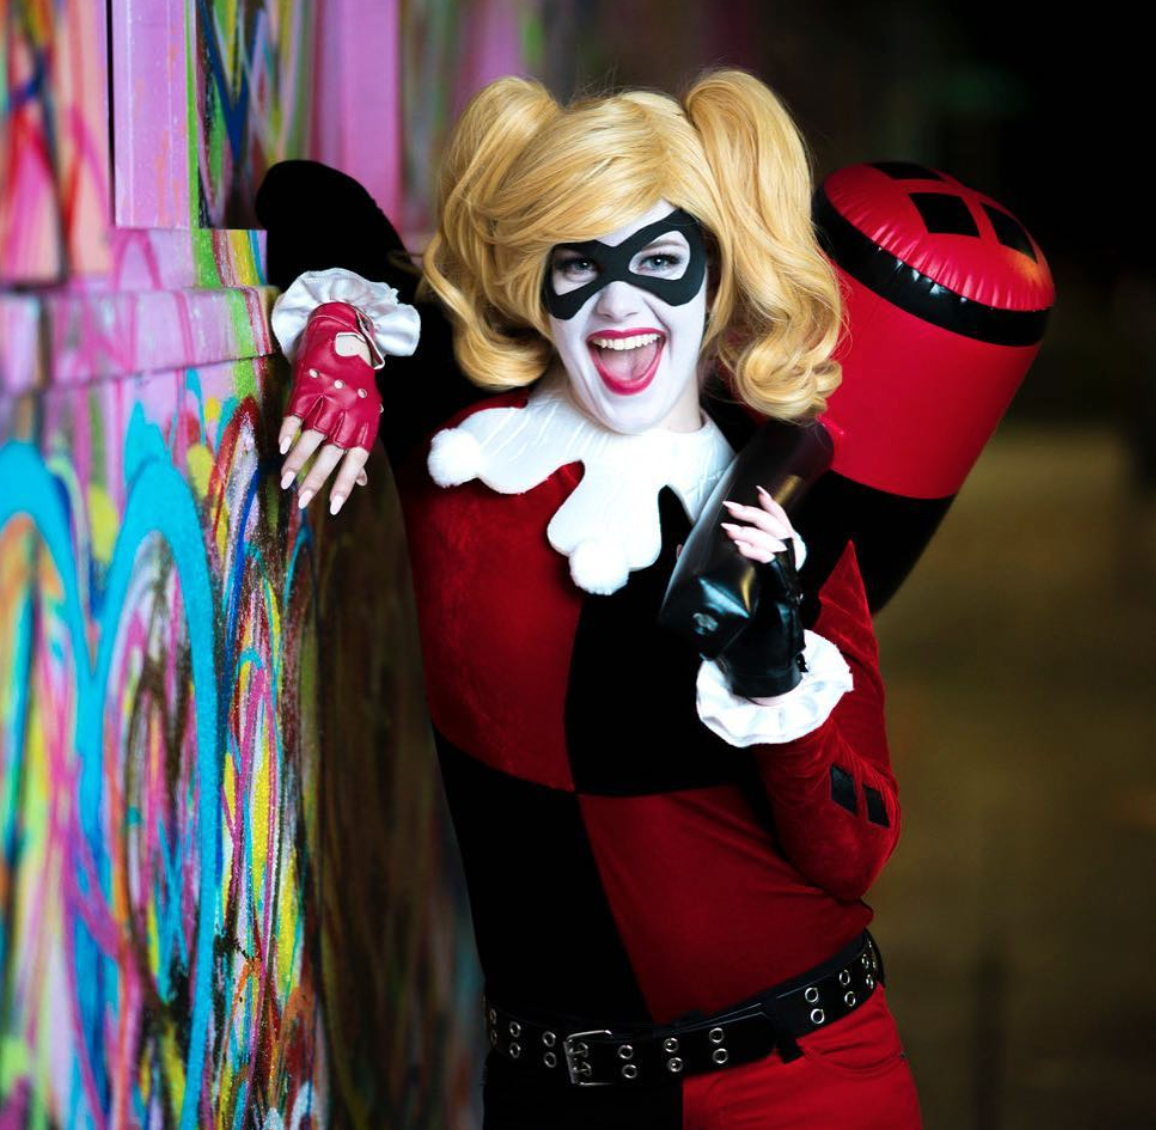 17 Diy Harley Quinn Costume Ideas Best Harley Quinn Halloween Costumes